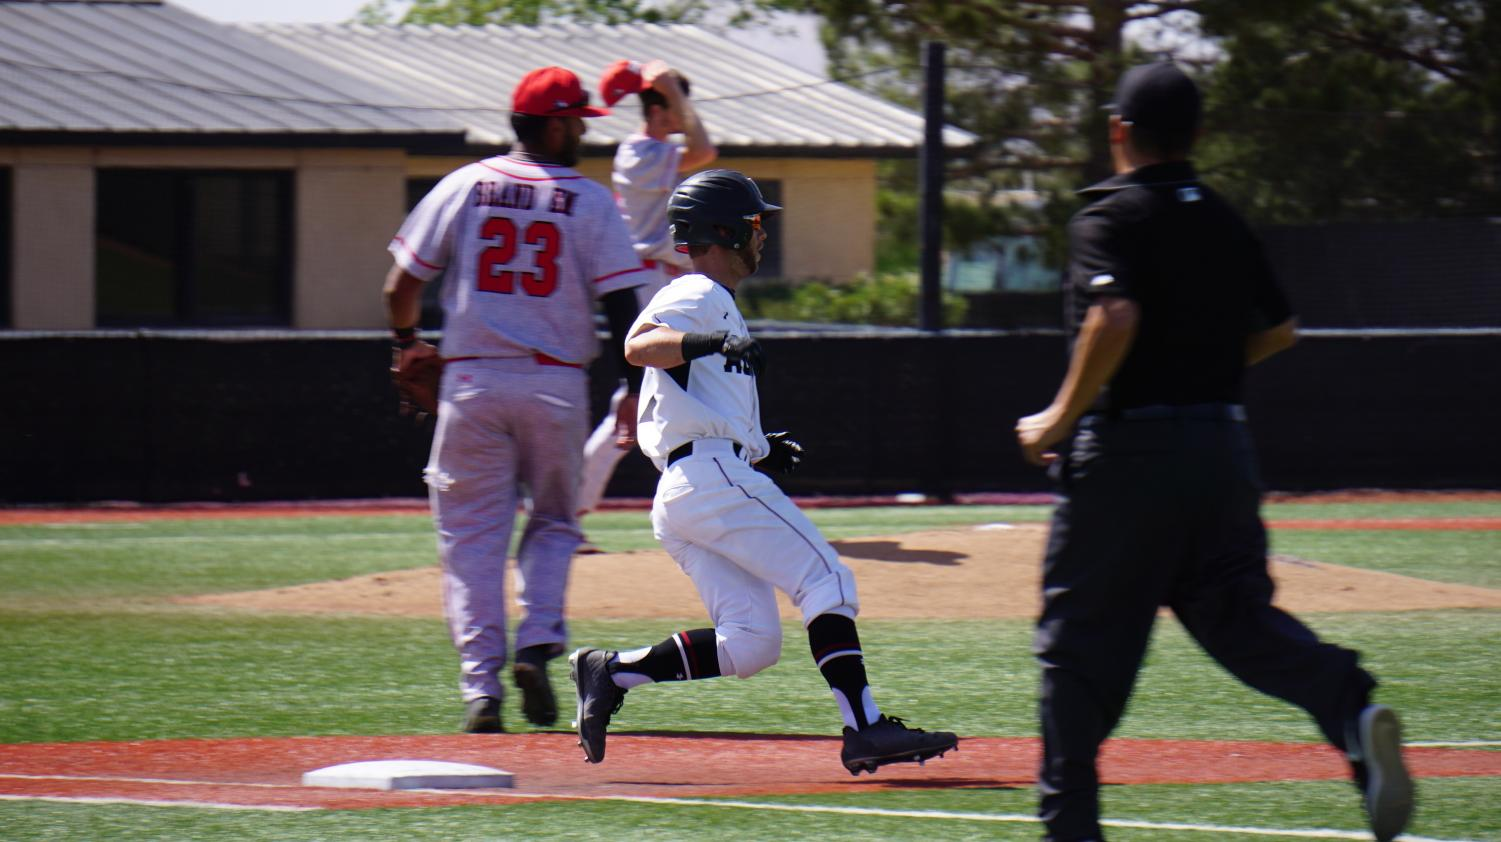 New Mexico State defeated the University of New Mexico Lobos for the second time this season by a final score of 13-2.